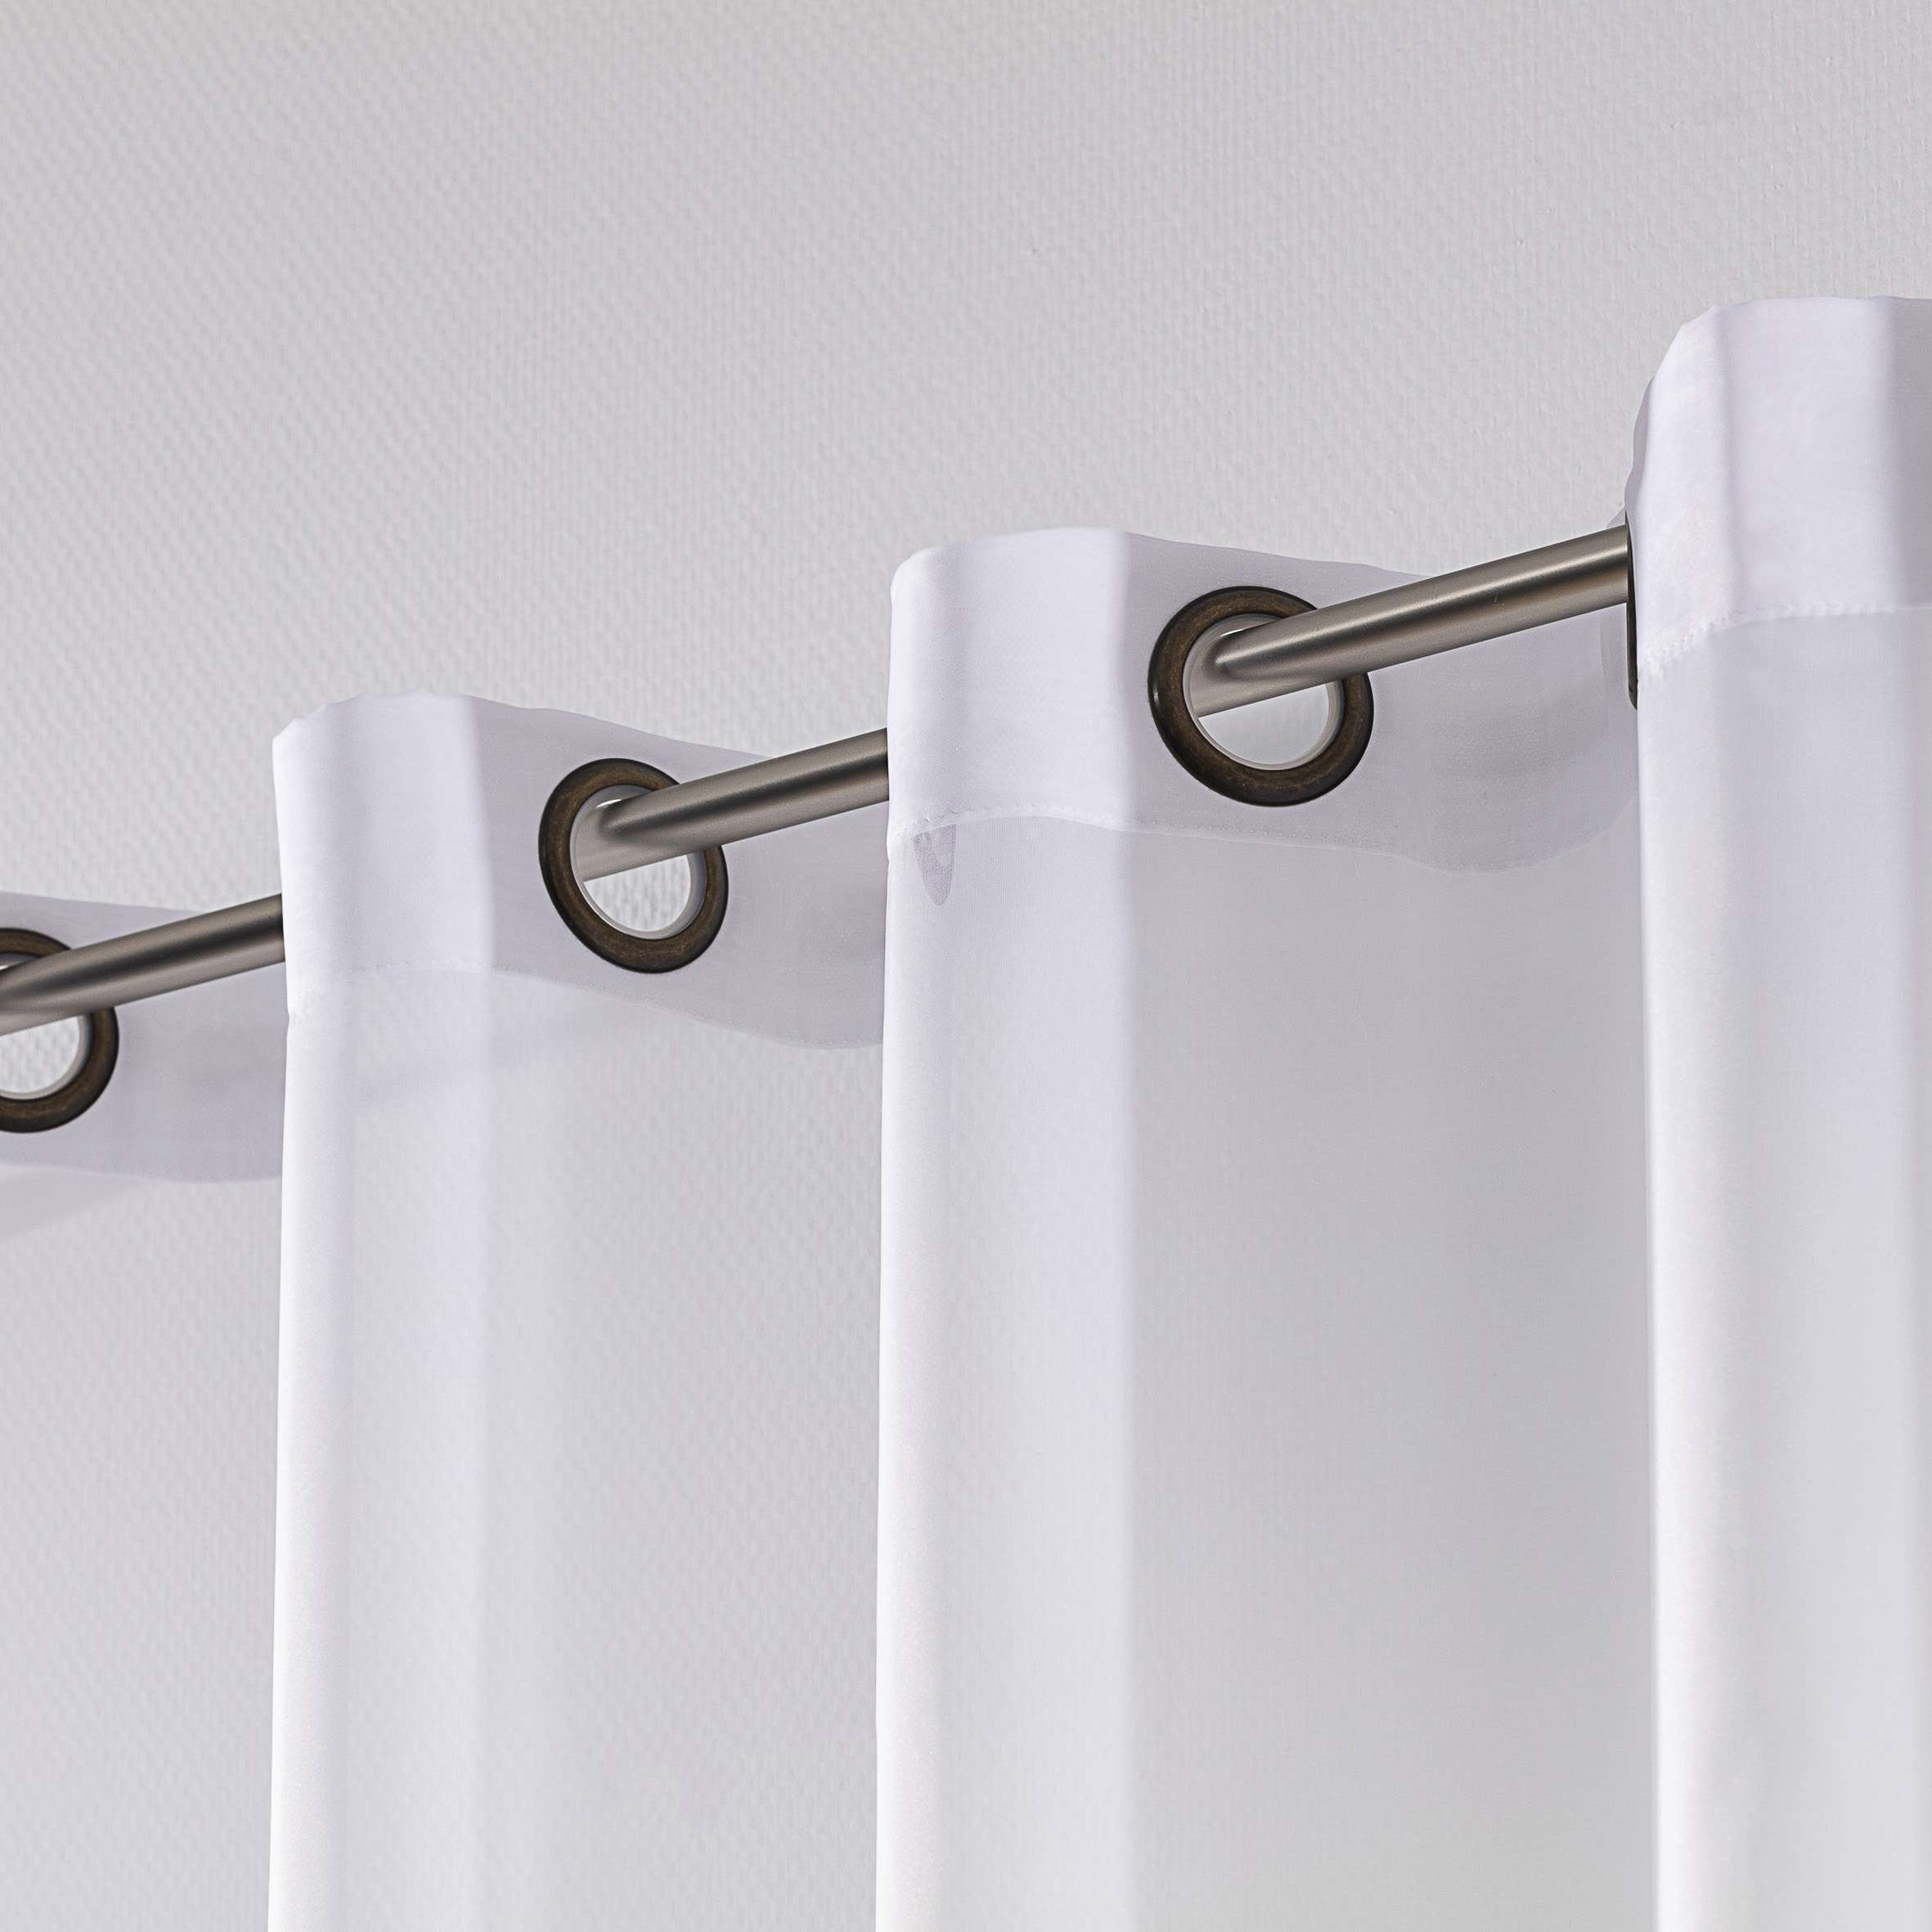 eyelet voile net curtains white lead hem dekoria. Black Bedroom Furniture Sets. Home Design Ideas